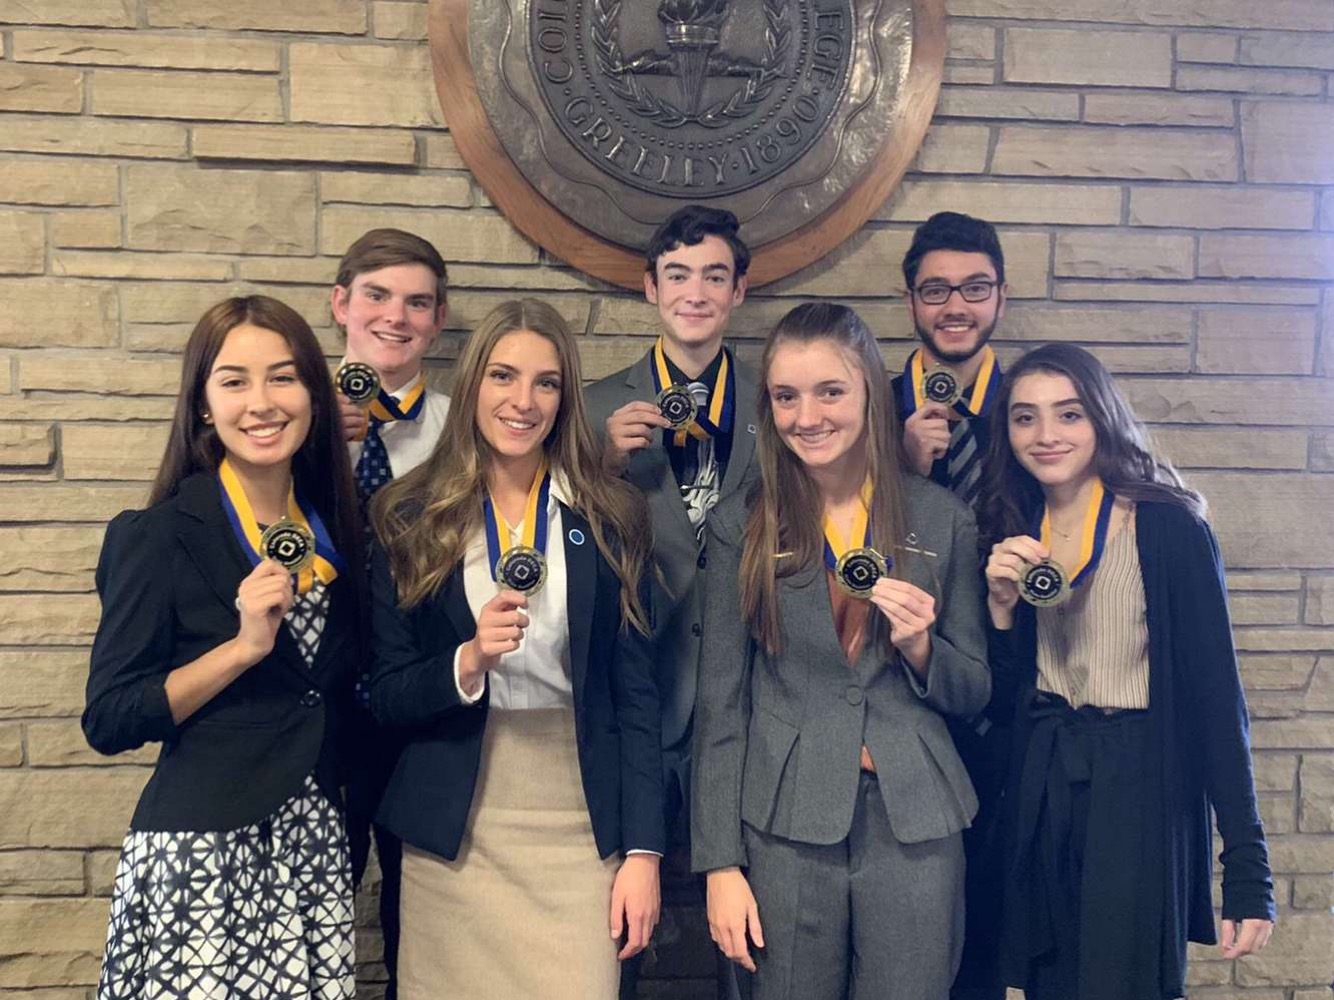 DECA students look spiffy posing with their medals after qualifying for the state competition